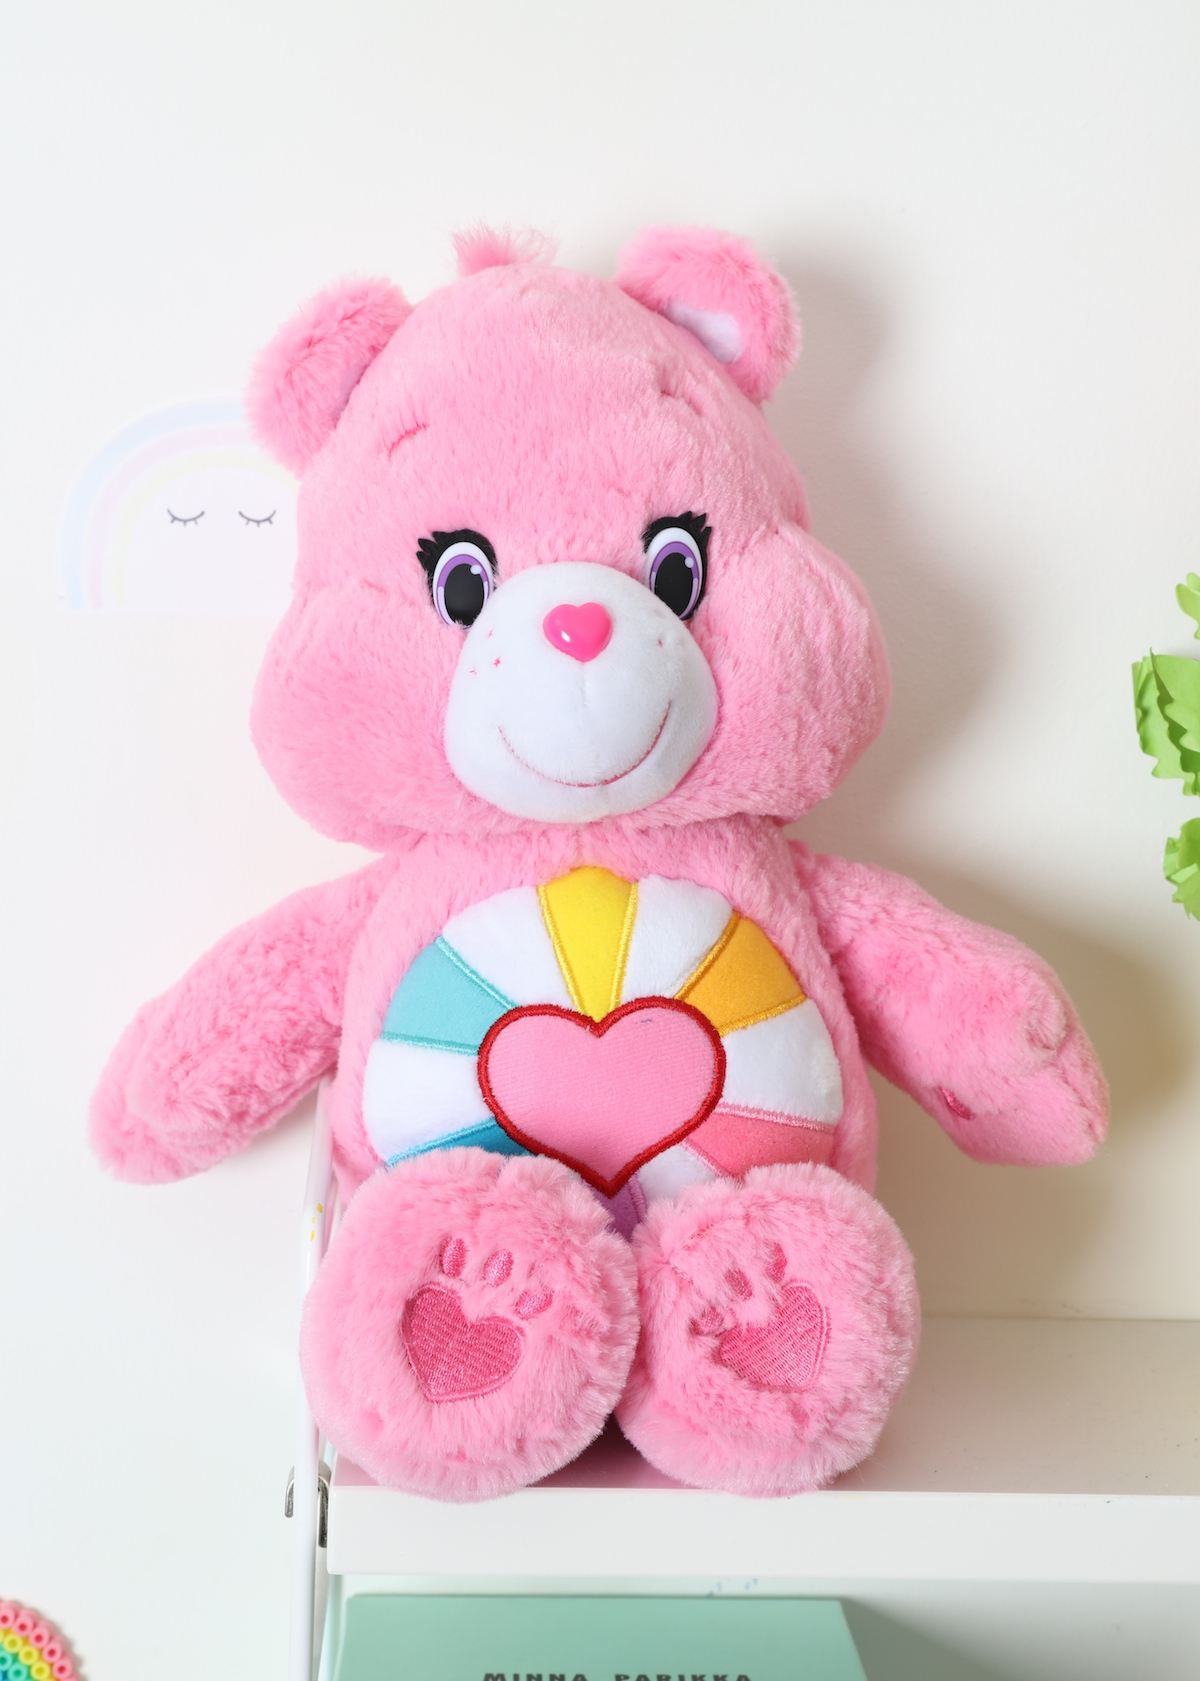 hopeful_heart_care_bear_five_little_diamonds